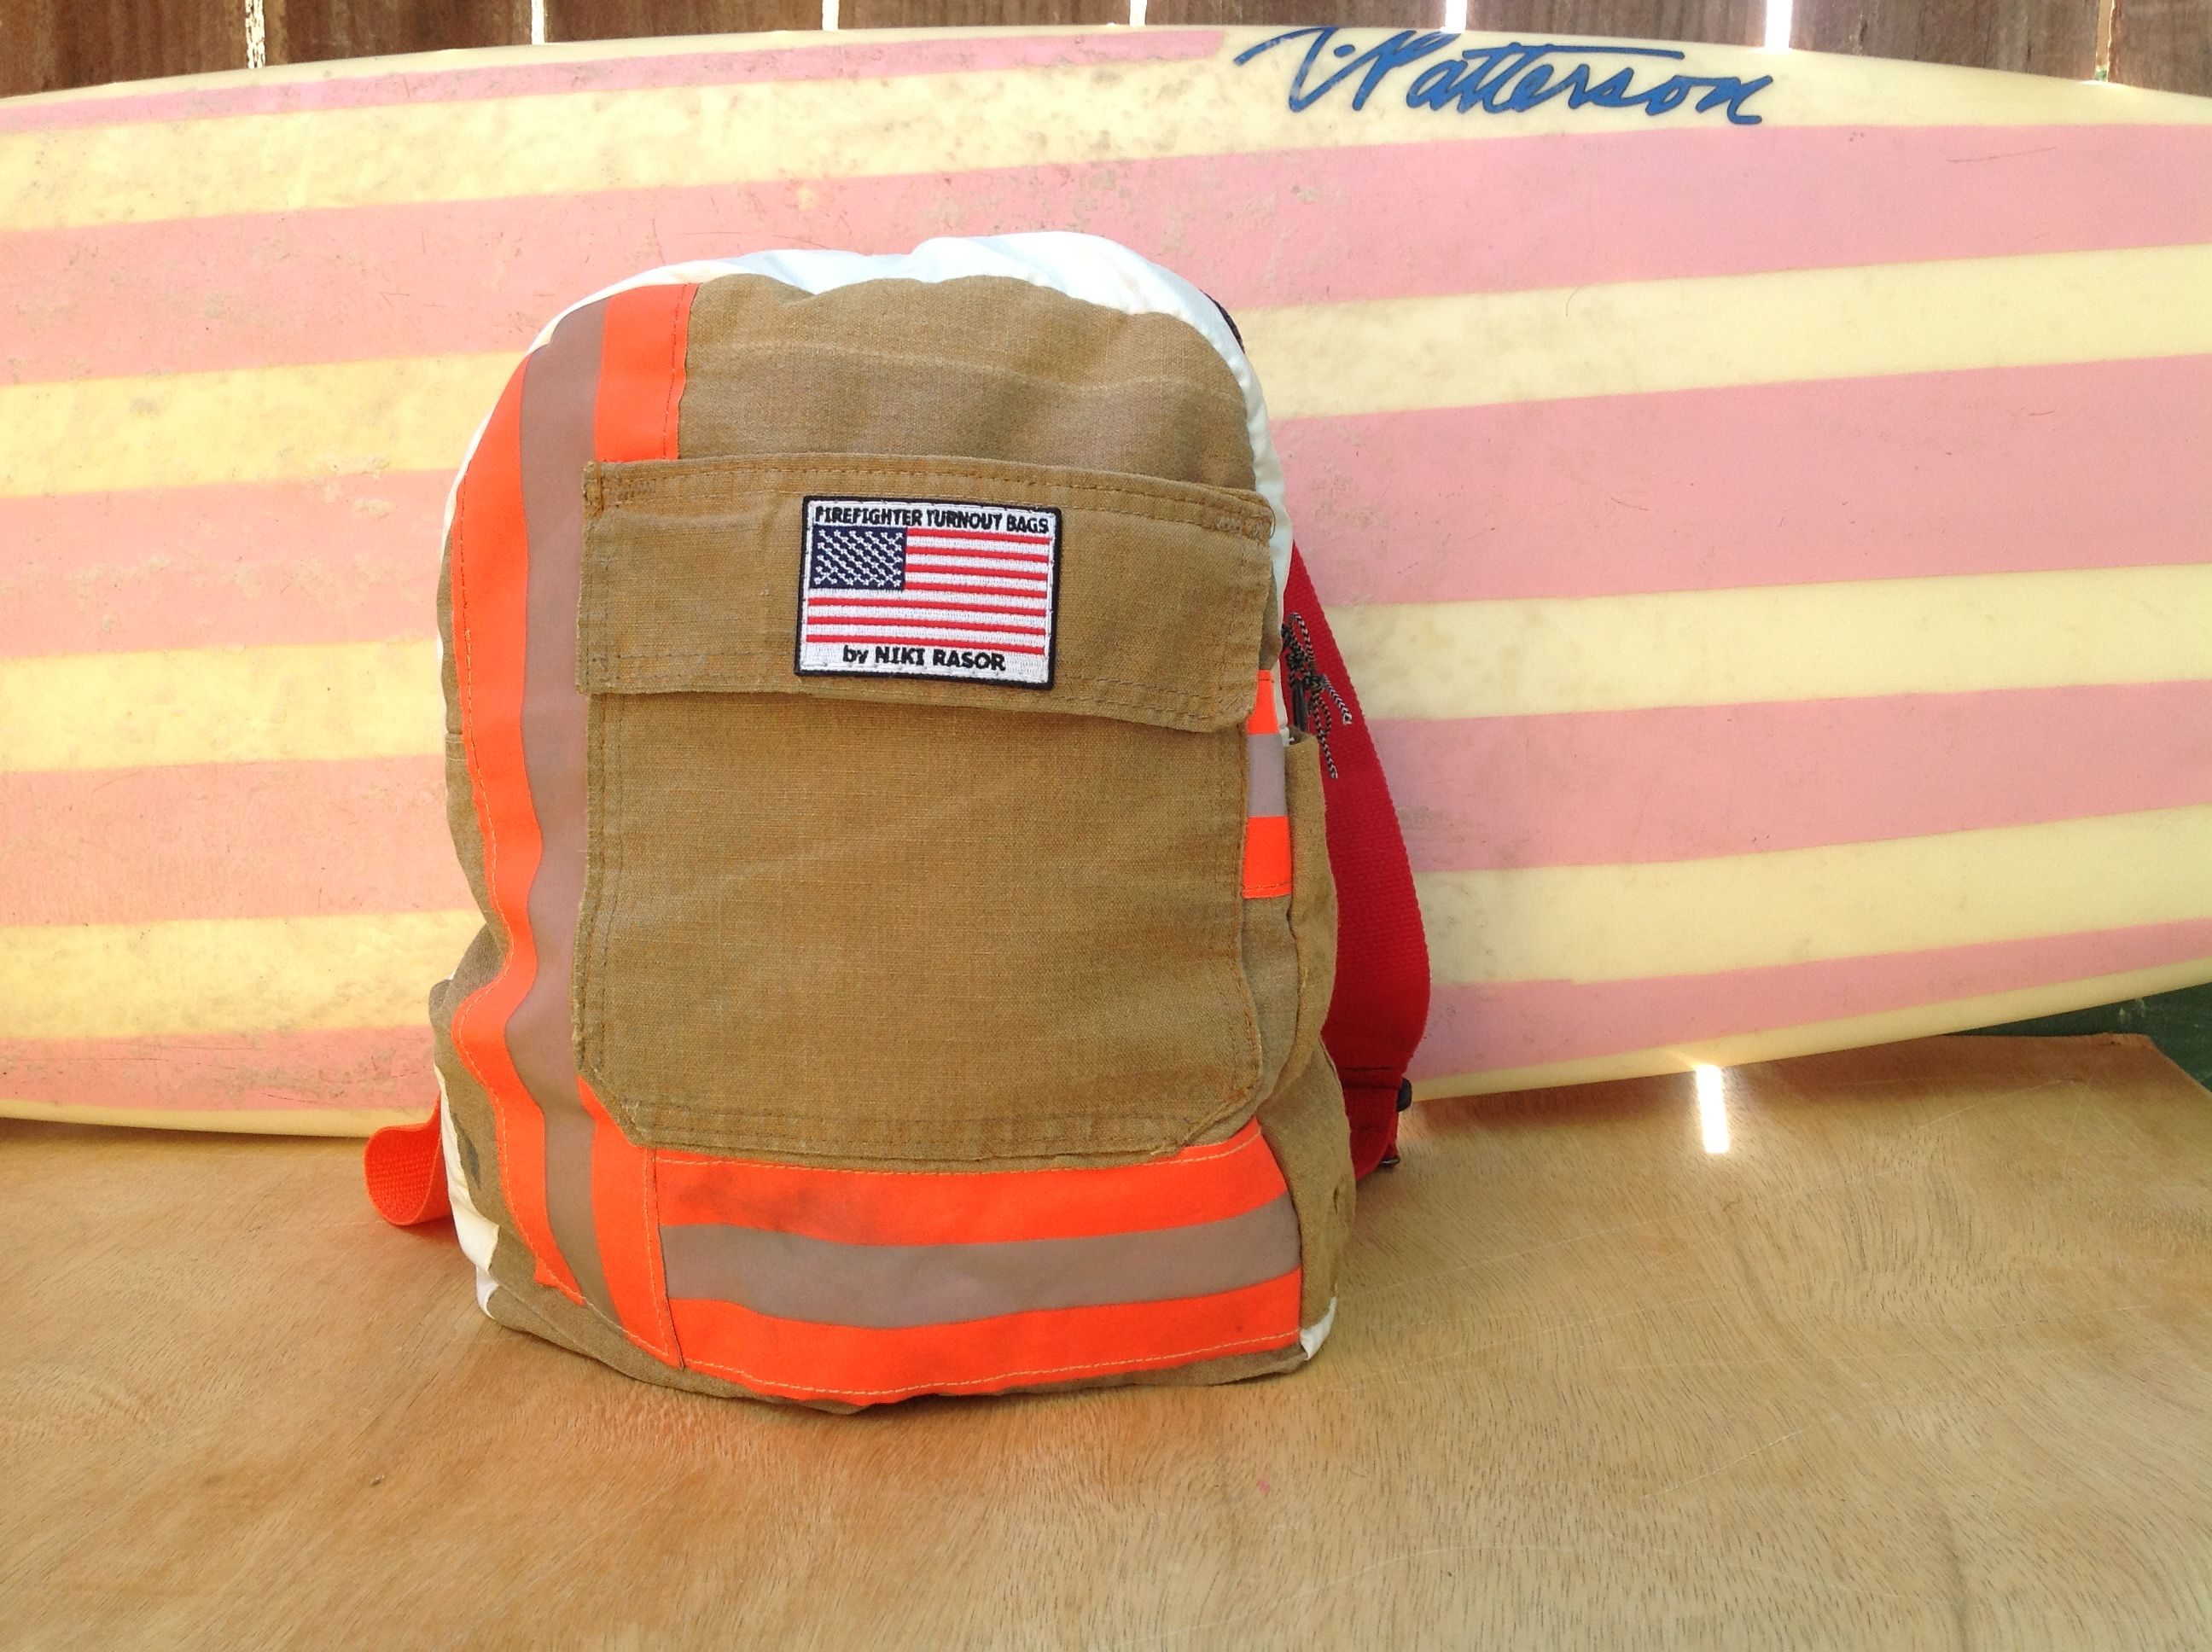 Recycled bunker gear bags - Made By Hand With Recycled Firefighter Bunker Gear This Backpack Has A Pocket Inside And